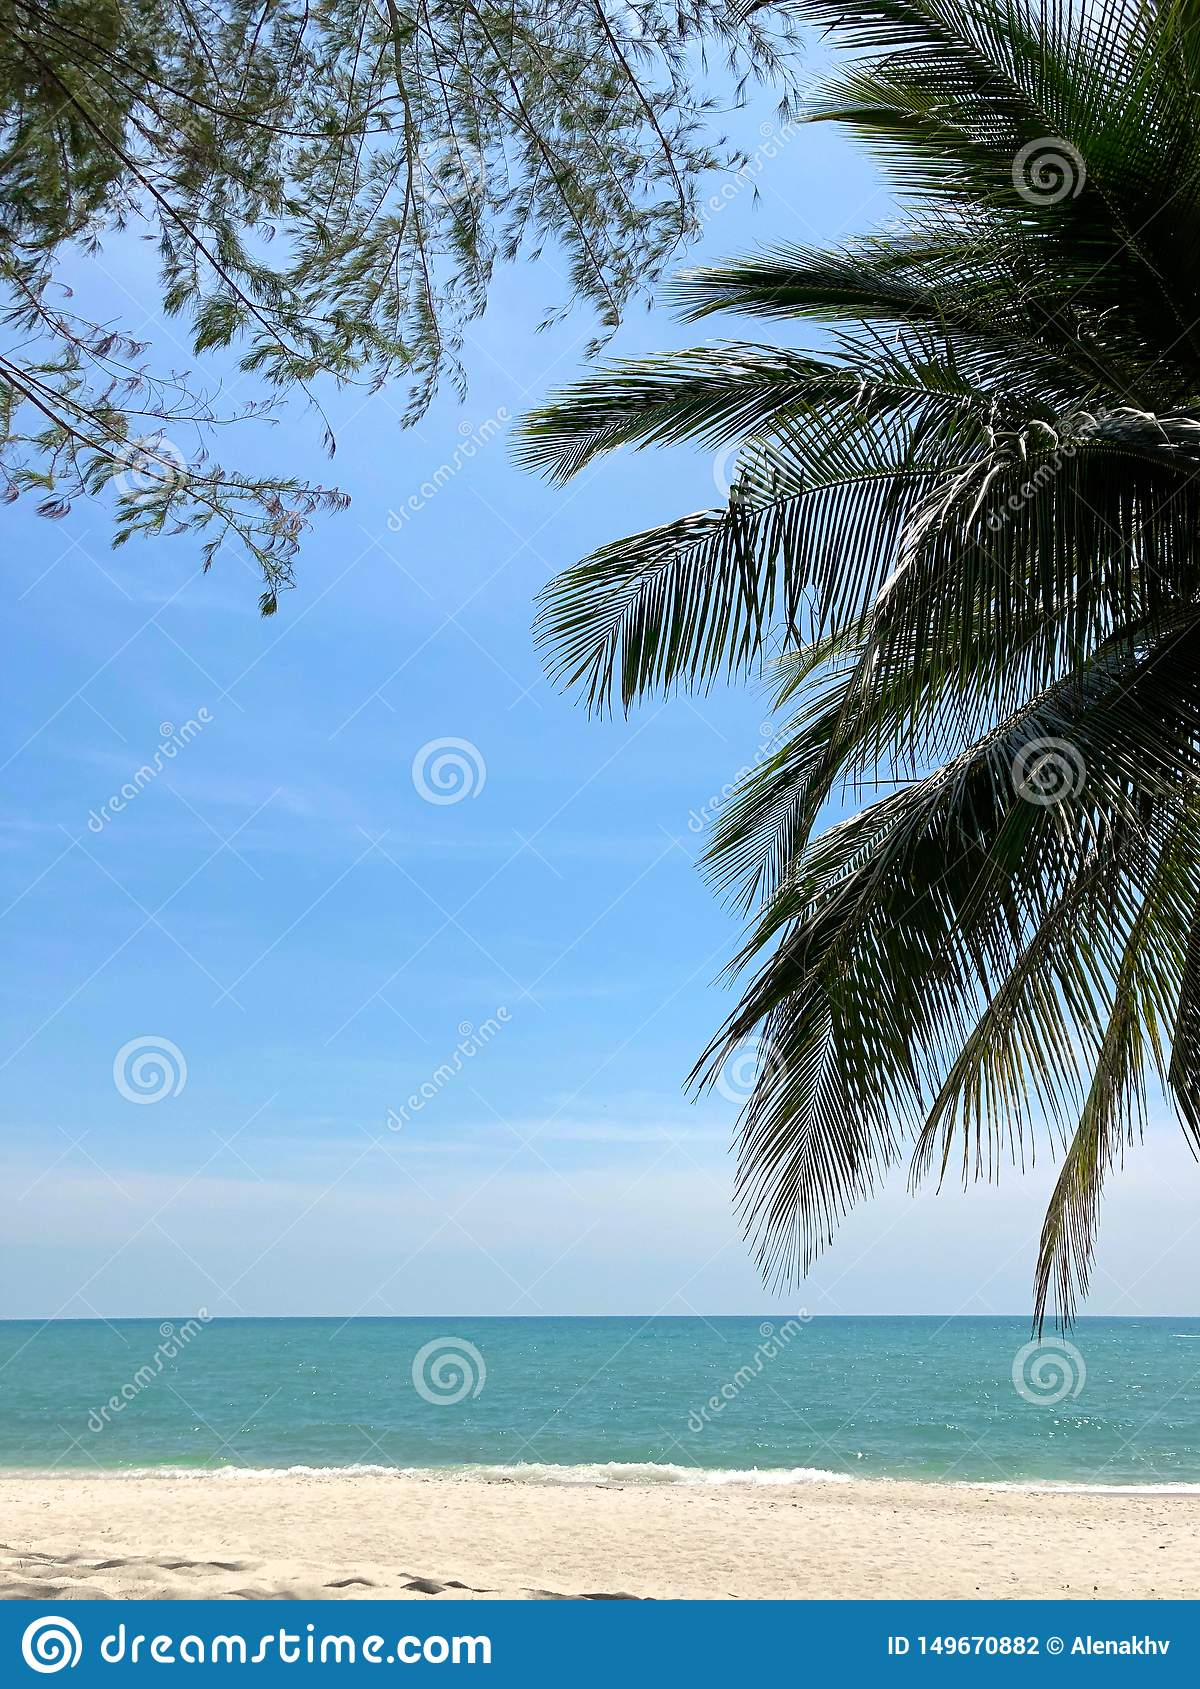 Palm branches and branches of a tropical tree against a blue sky, turquoise sea and white sand